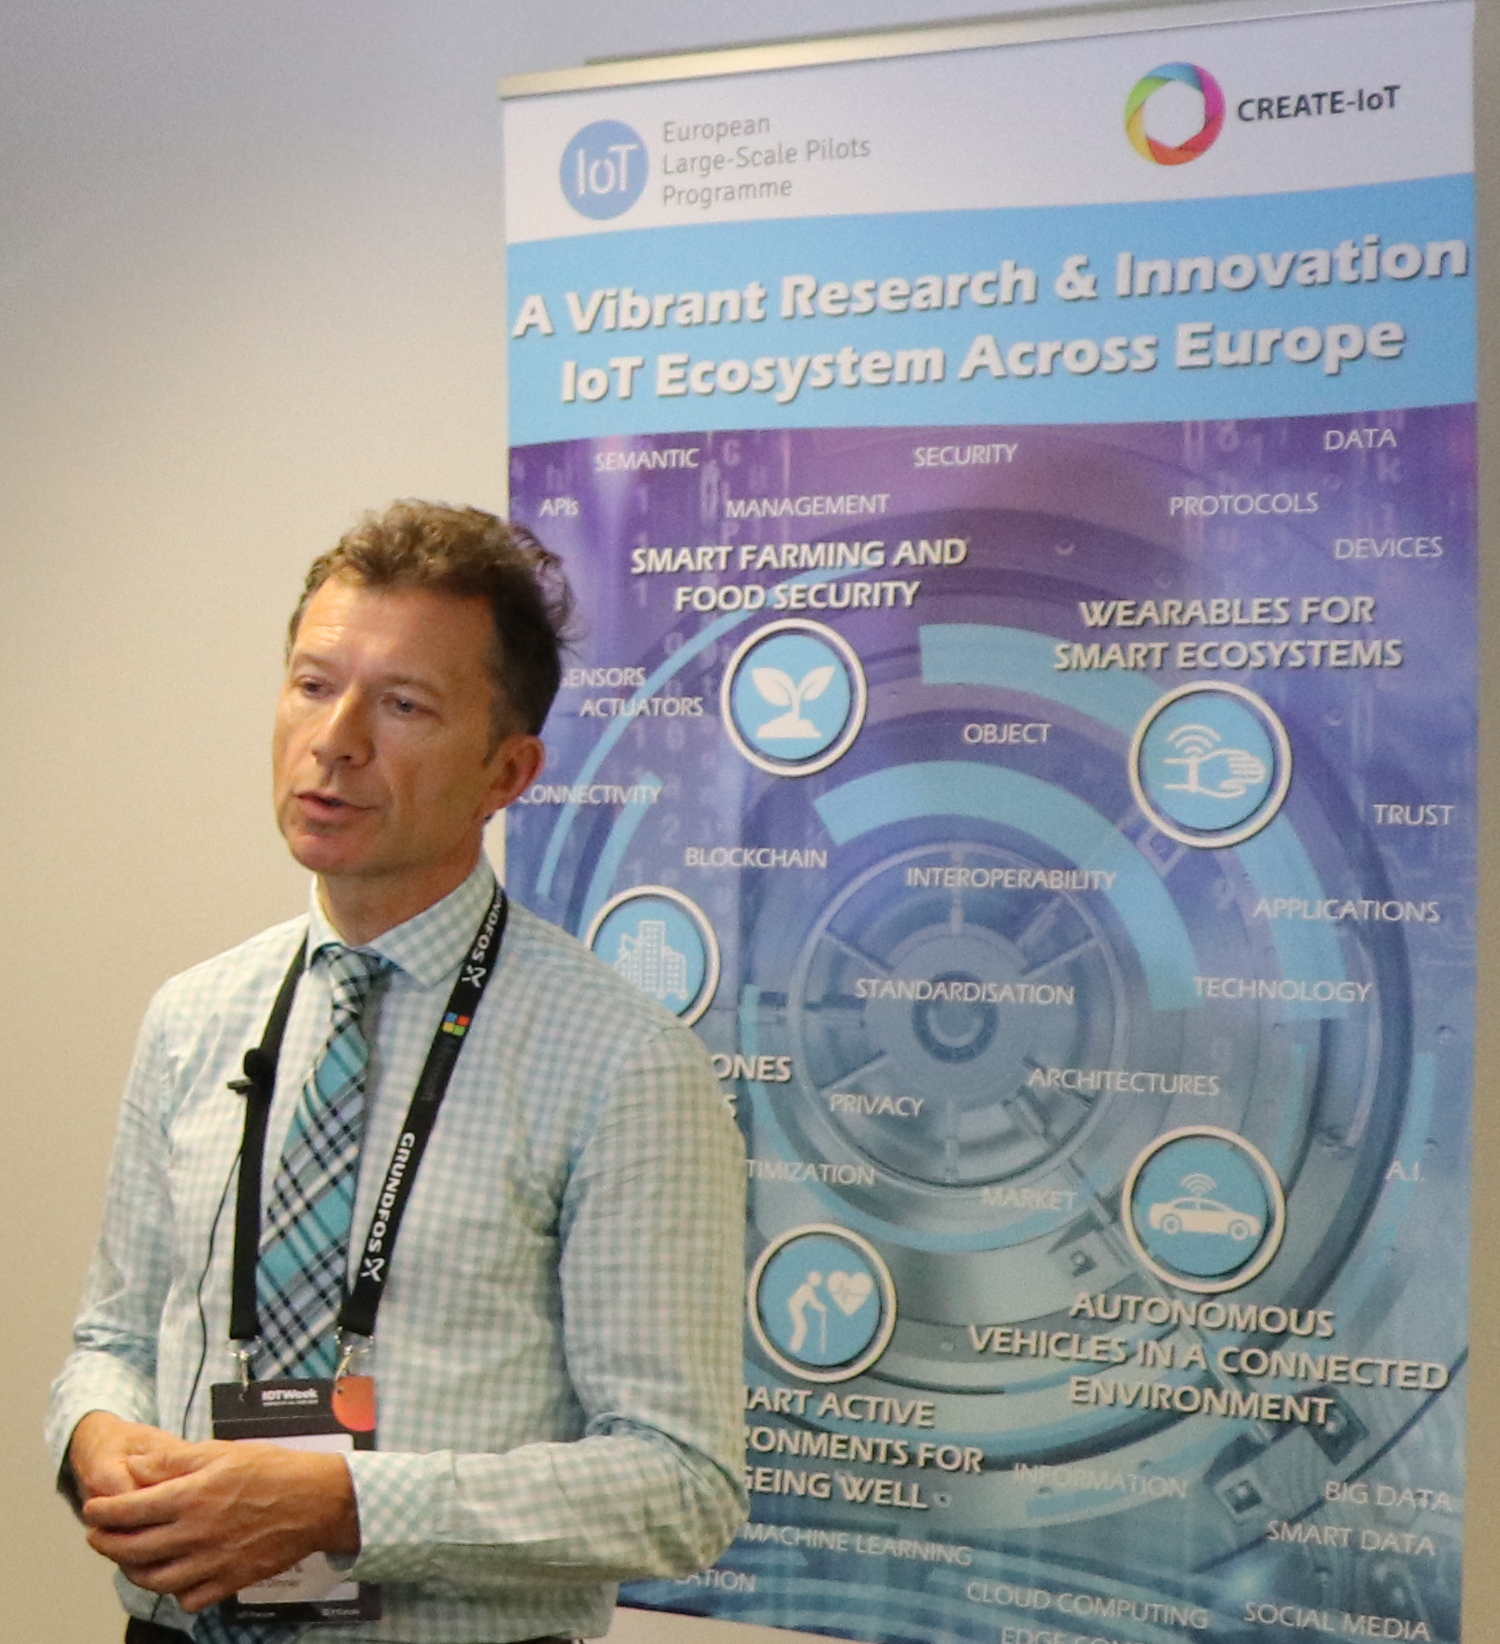 IoT European Large-Scale Pilots - EC Interviews